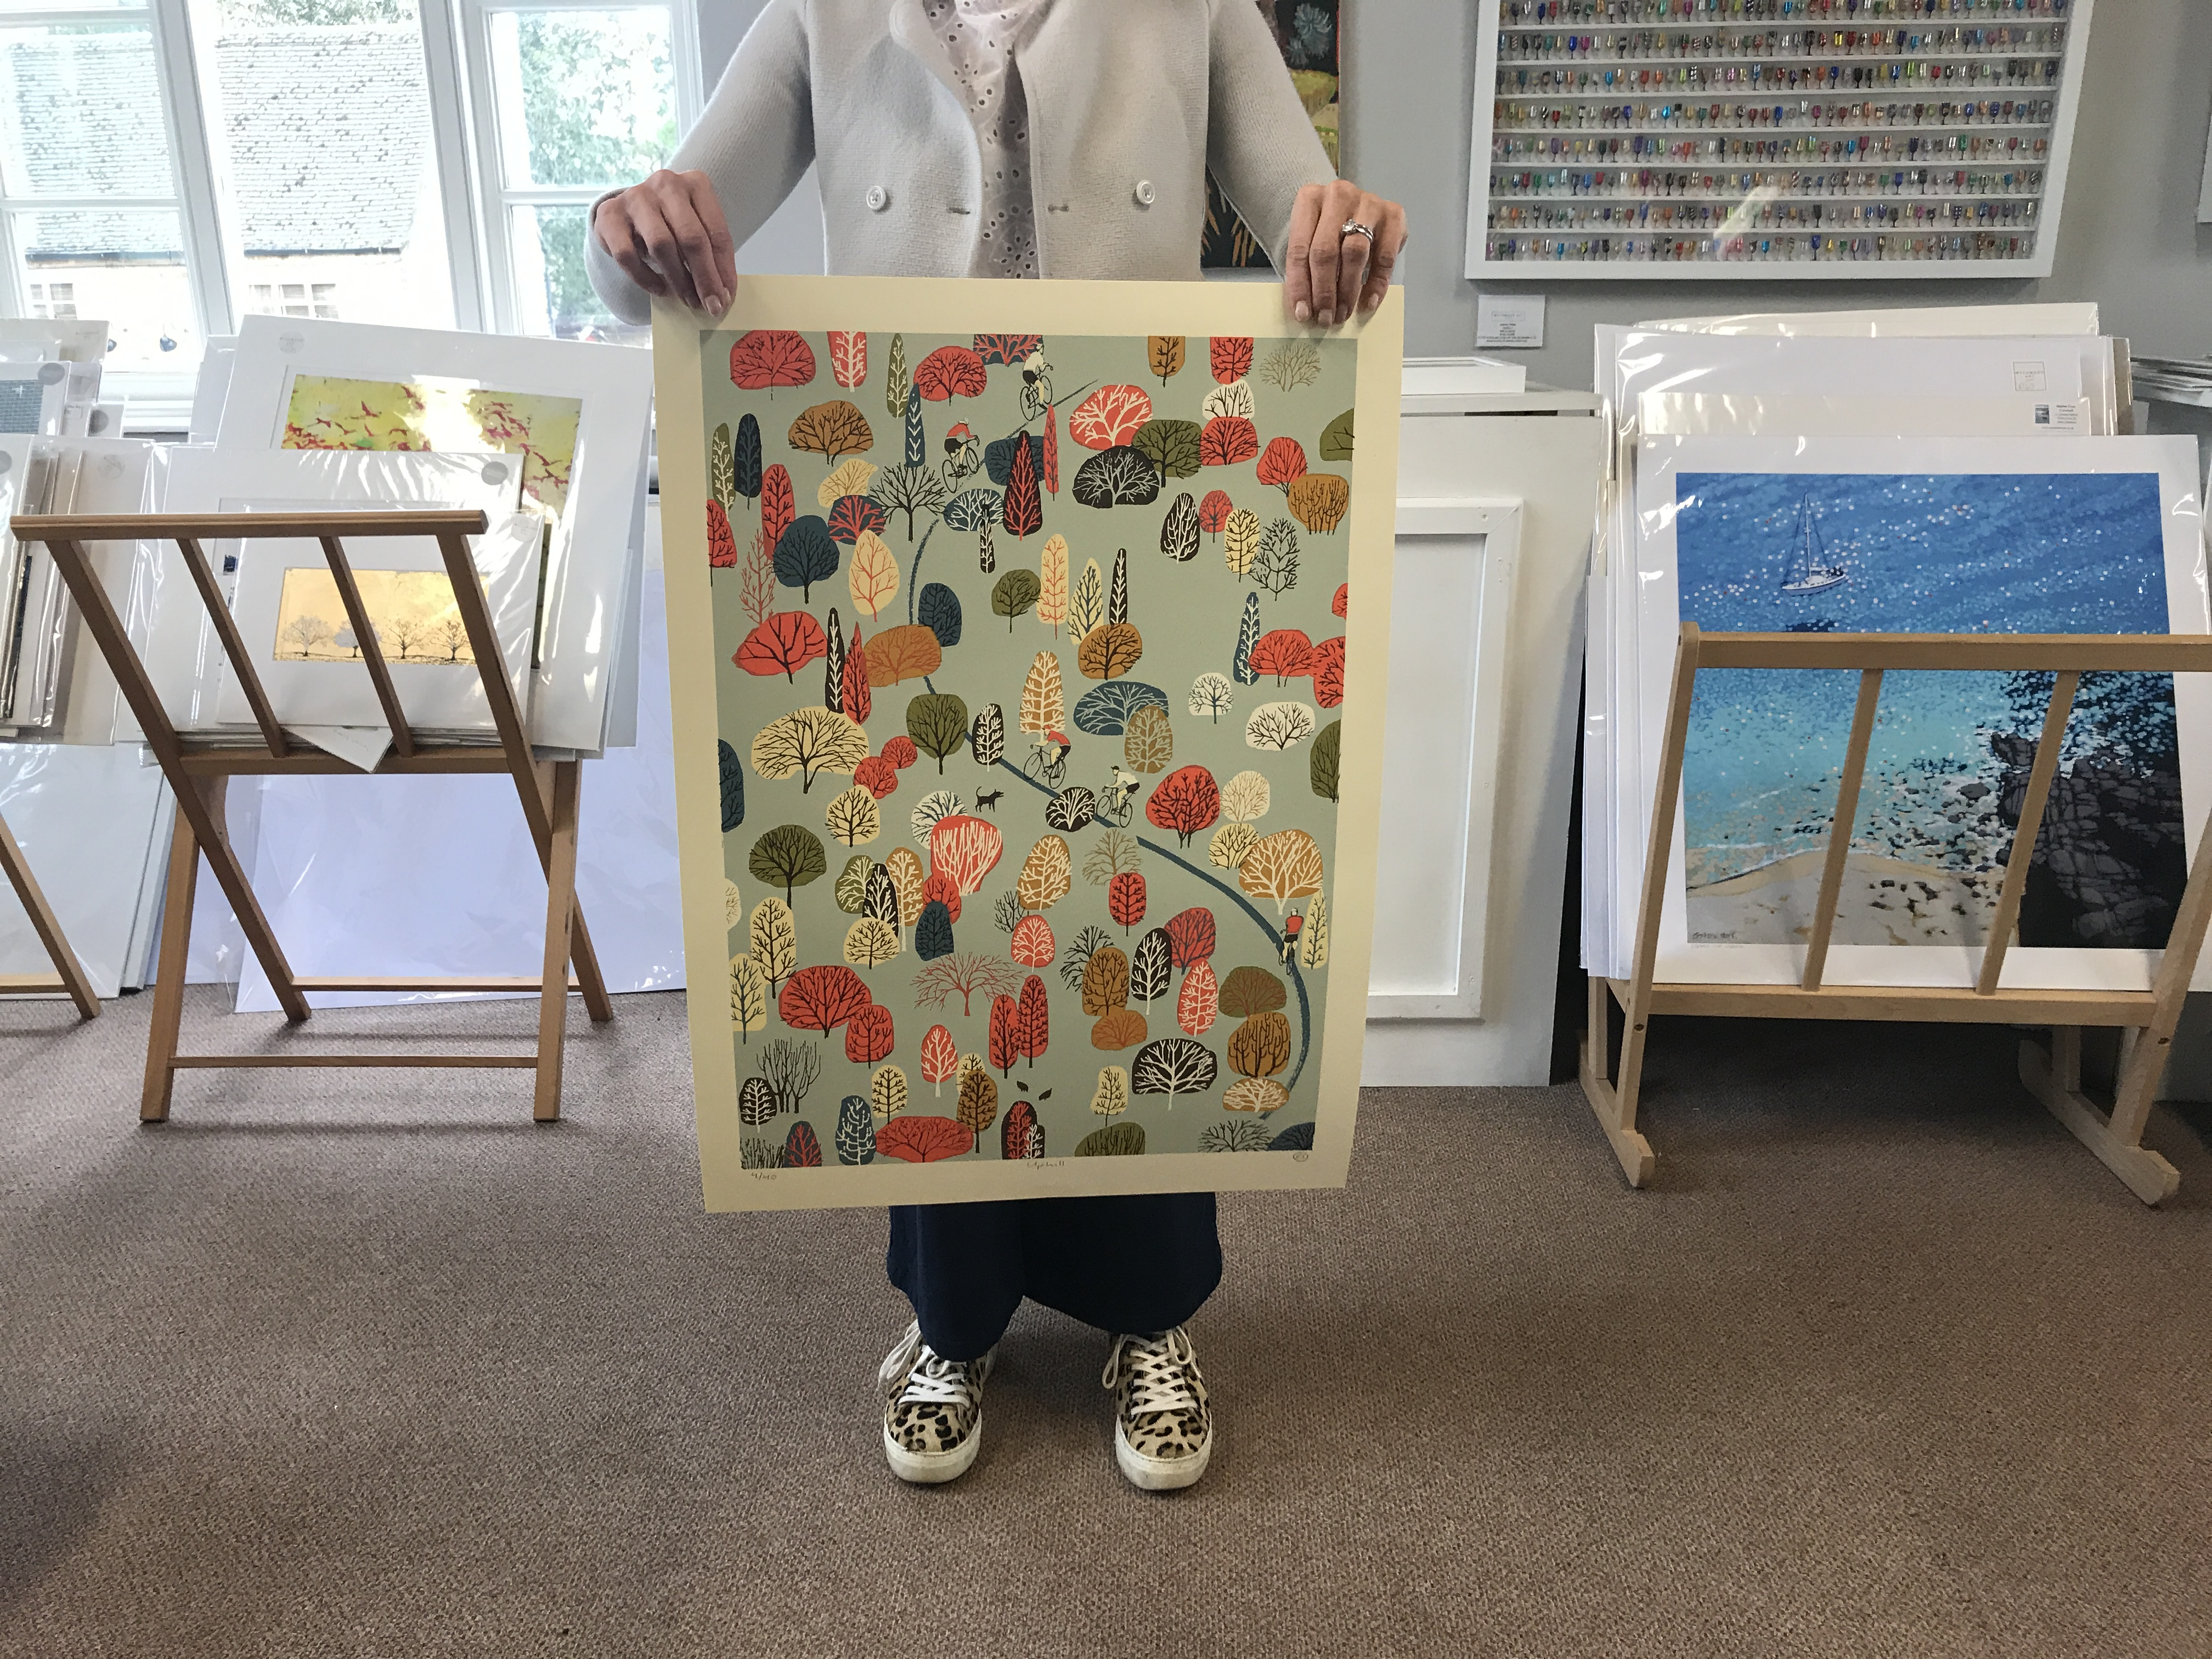 Eliza Southwold's Uphill limited edition print pictured for scale.